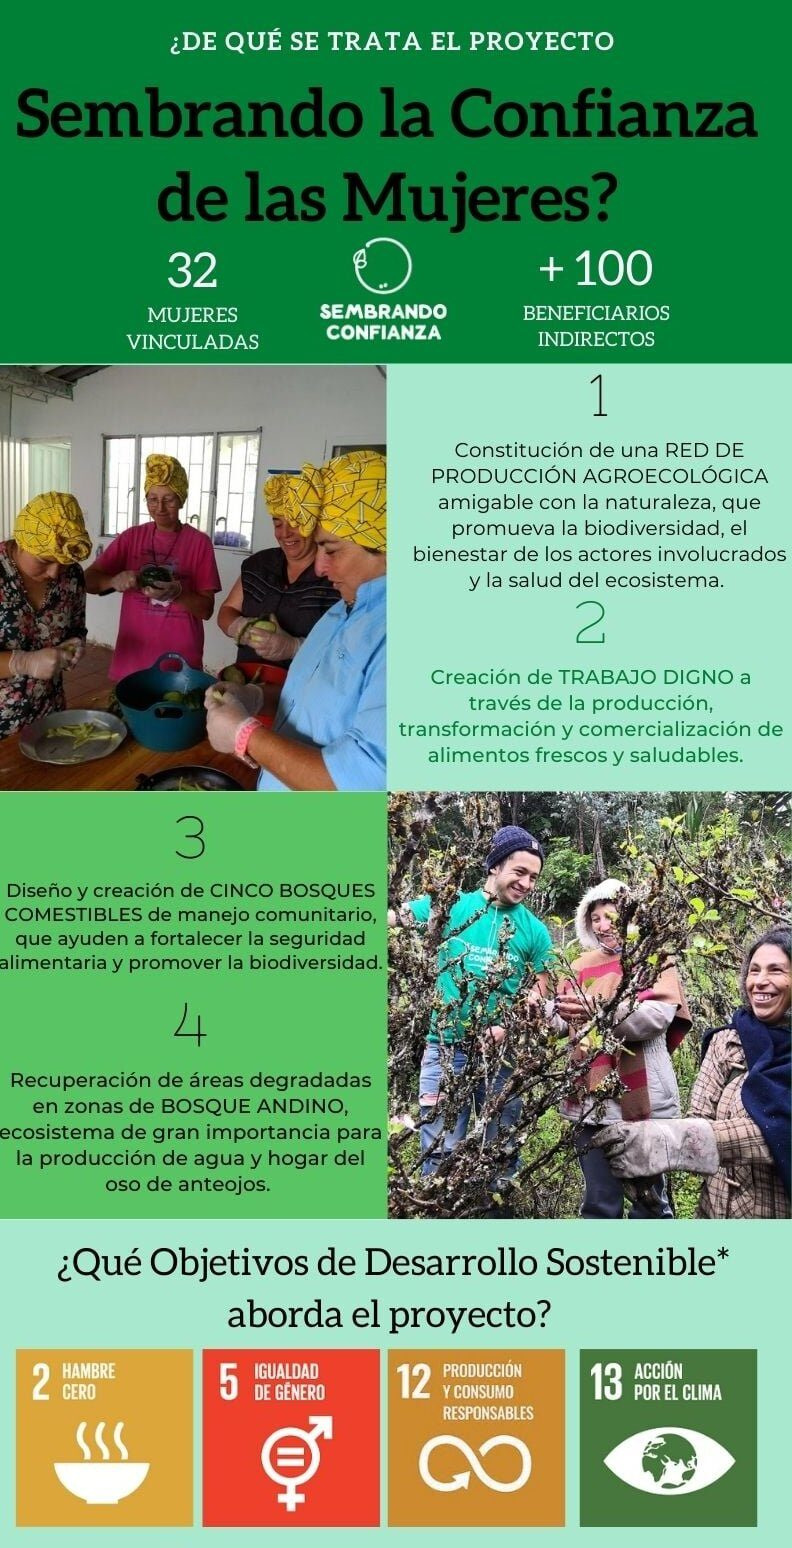 """First social- and environmental compensation project from CarbonoLocal.Topic: Sustainable and regenerative agriculture developed by a group of 32 female farmers in the rural side of Choachi, Colombia. Name of the project:""""Sembrando la confianza de las mujeres"""". In cooperation with """"Fundación proyectar sin fronteras"""" Organisation."""